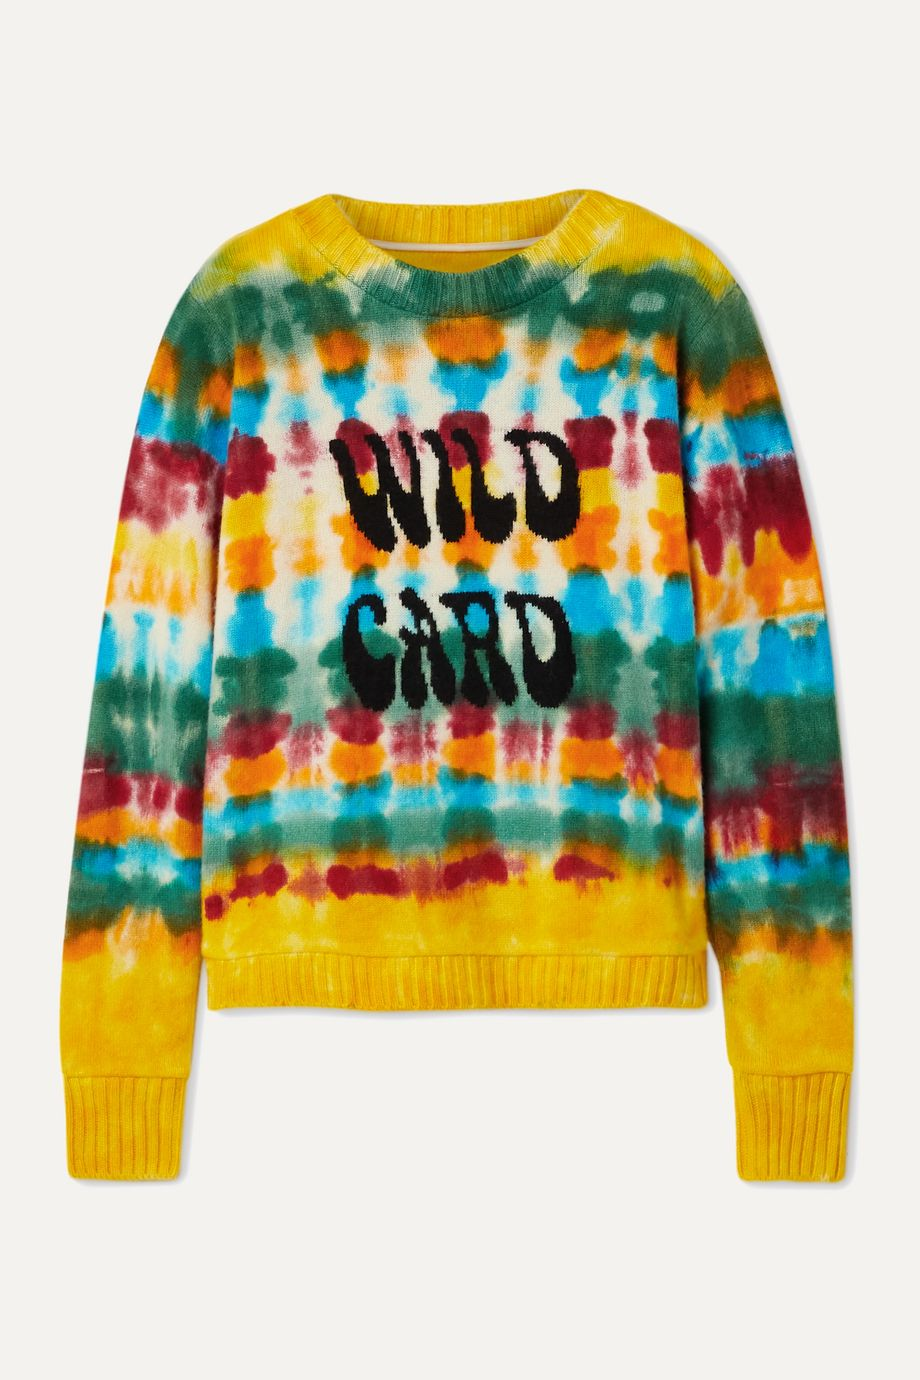 The Elder Statesman Wild Card tie-dyed cashmere sweater